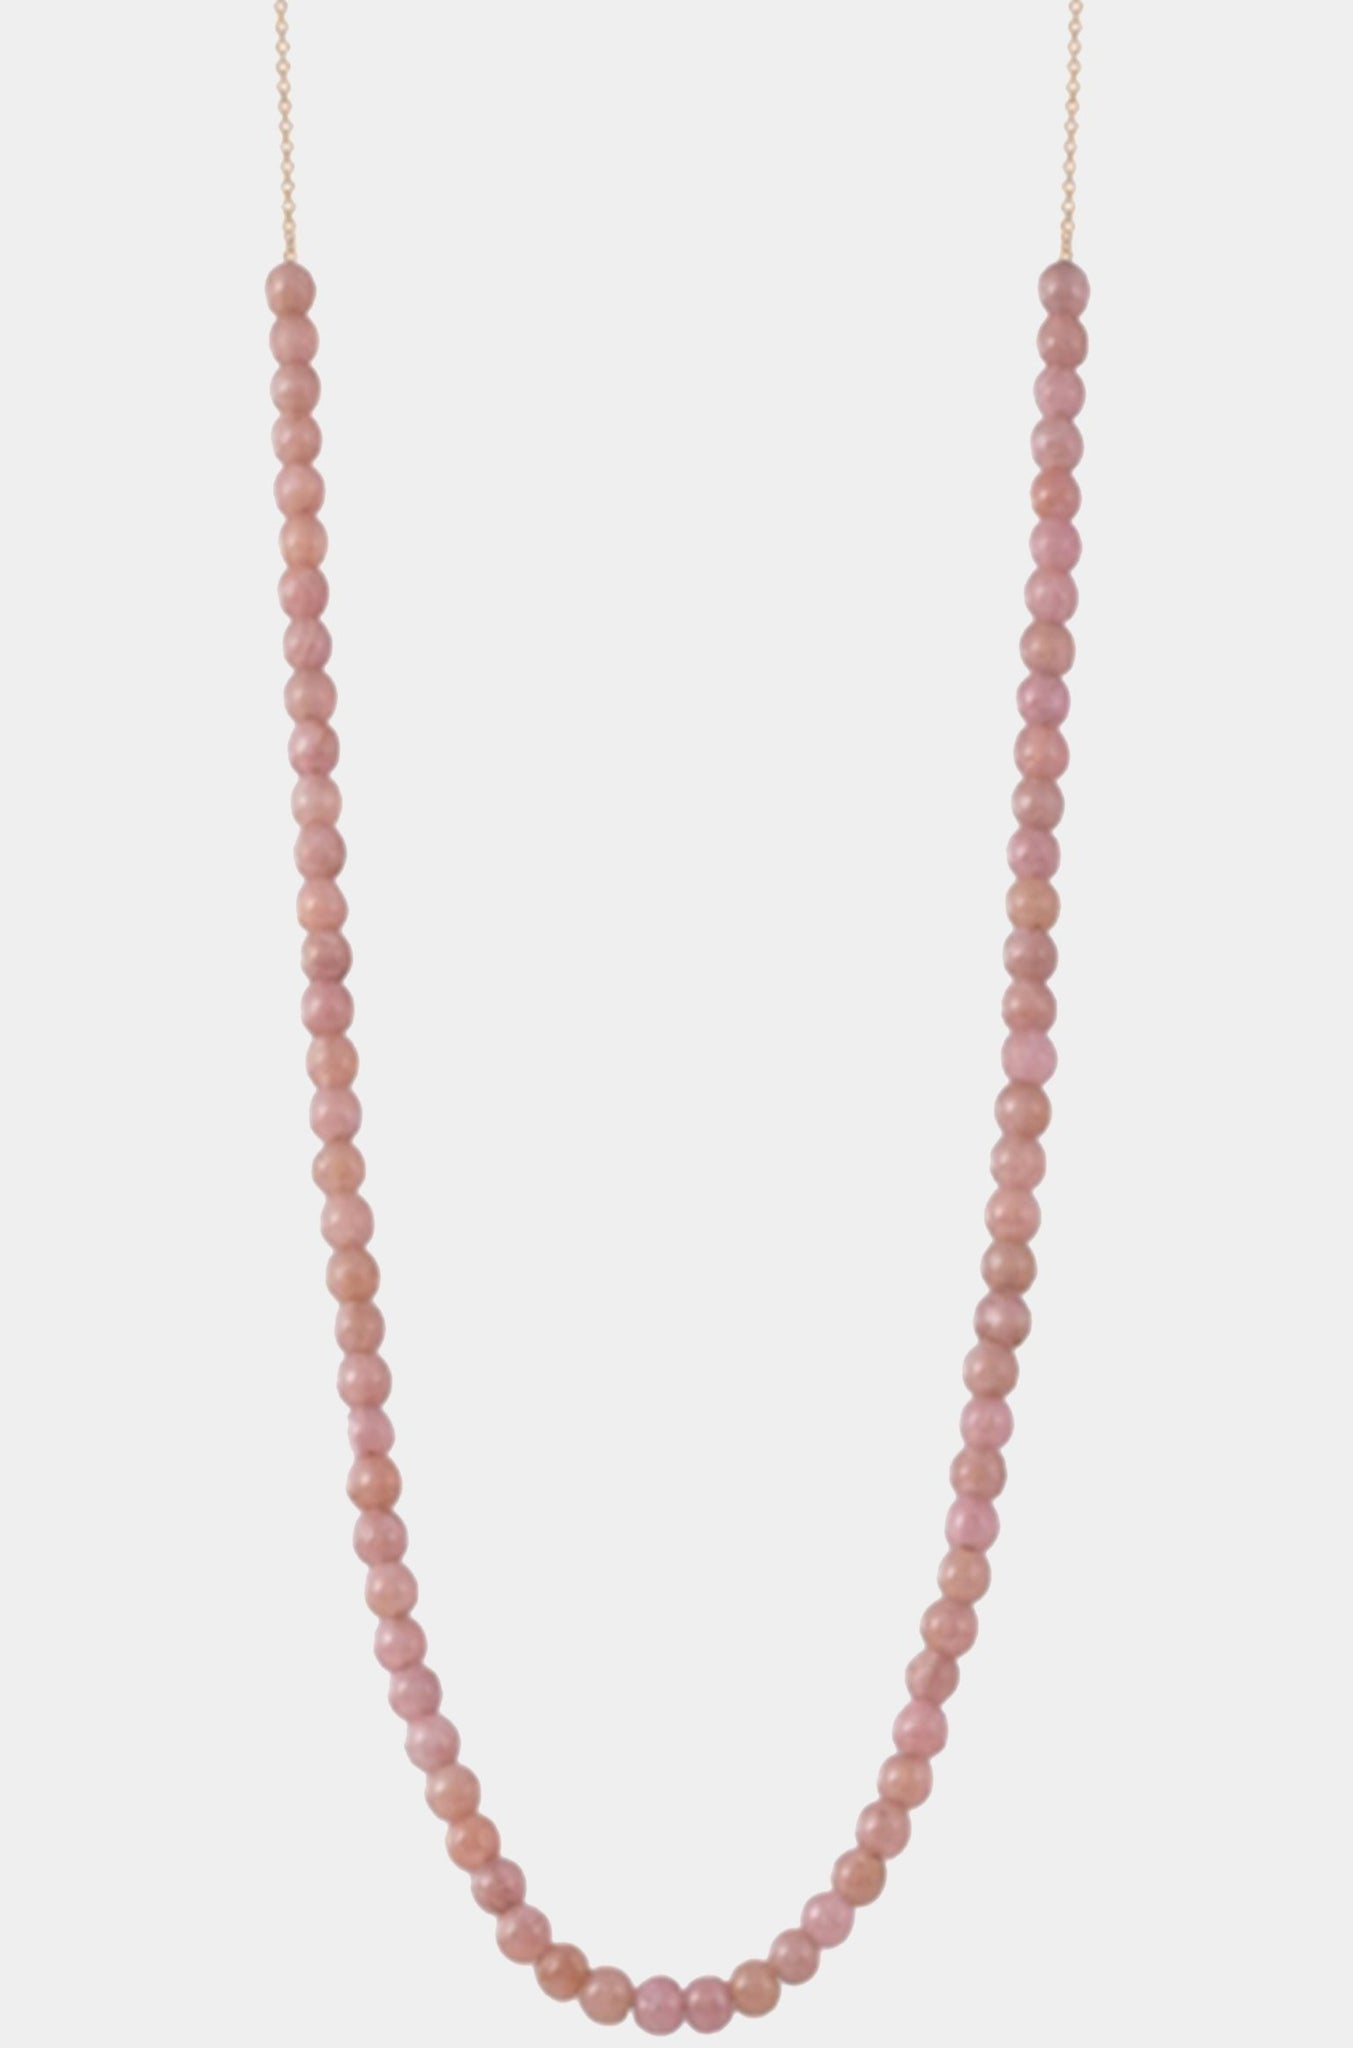 Ginette NY - maria mini necklace, rhodocrosite